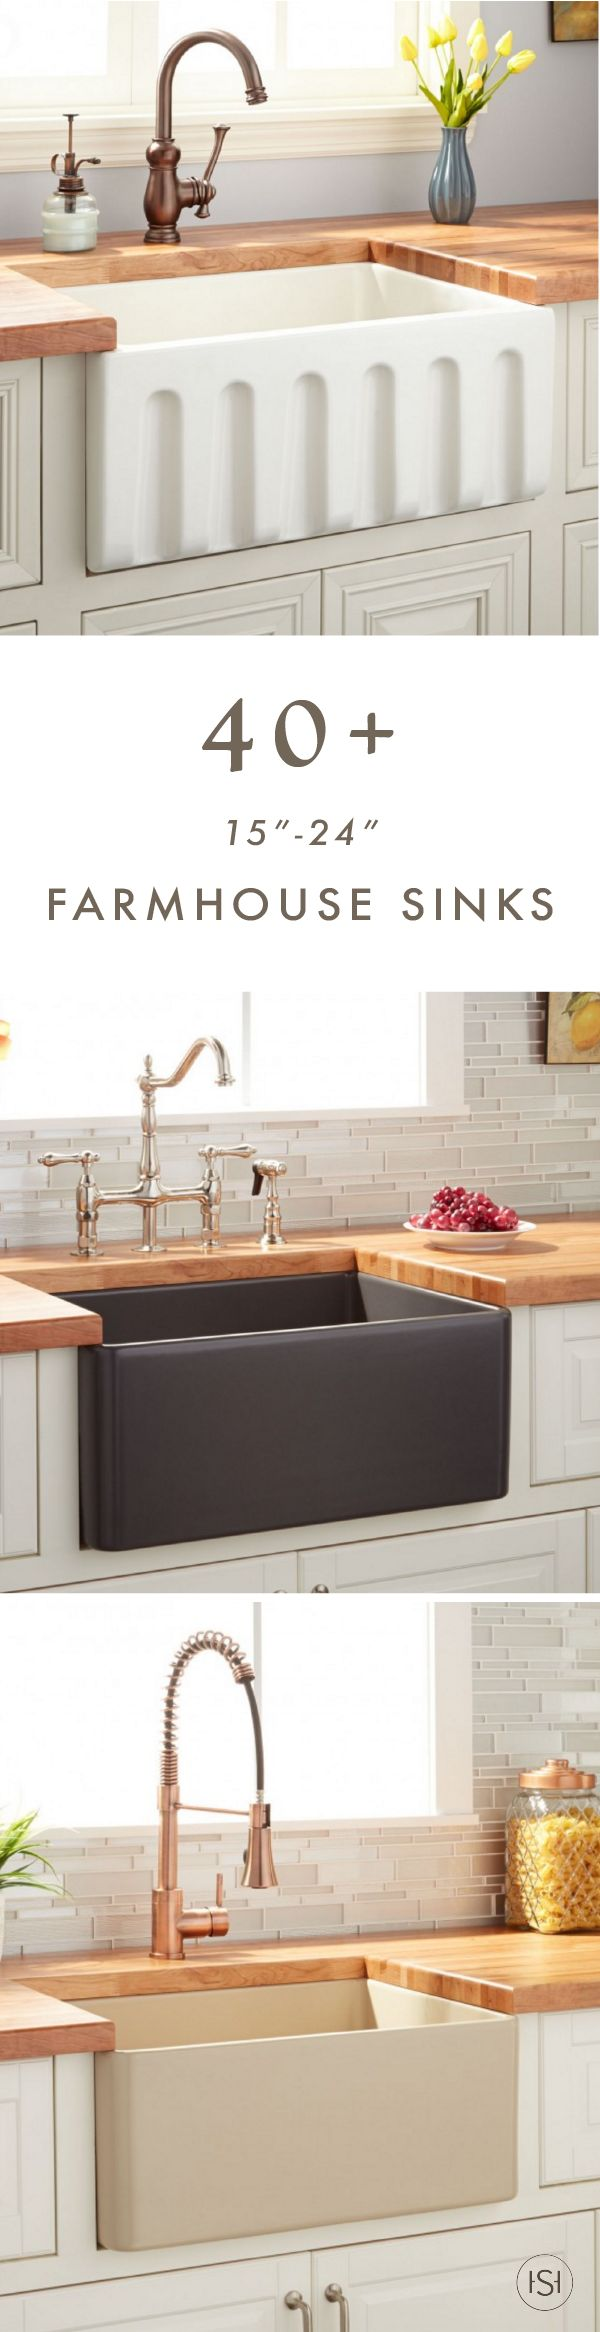 best 25+ small kitchen sinks ideas on pinterest | small kitchen